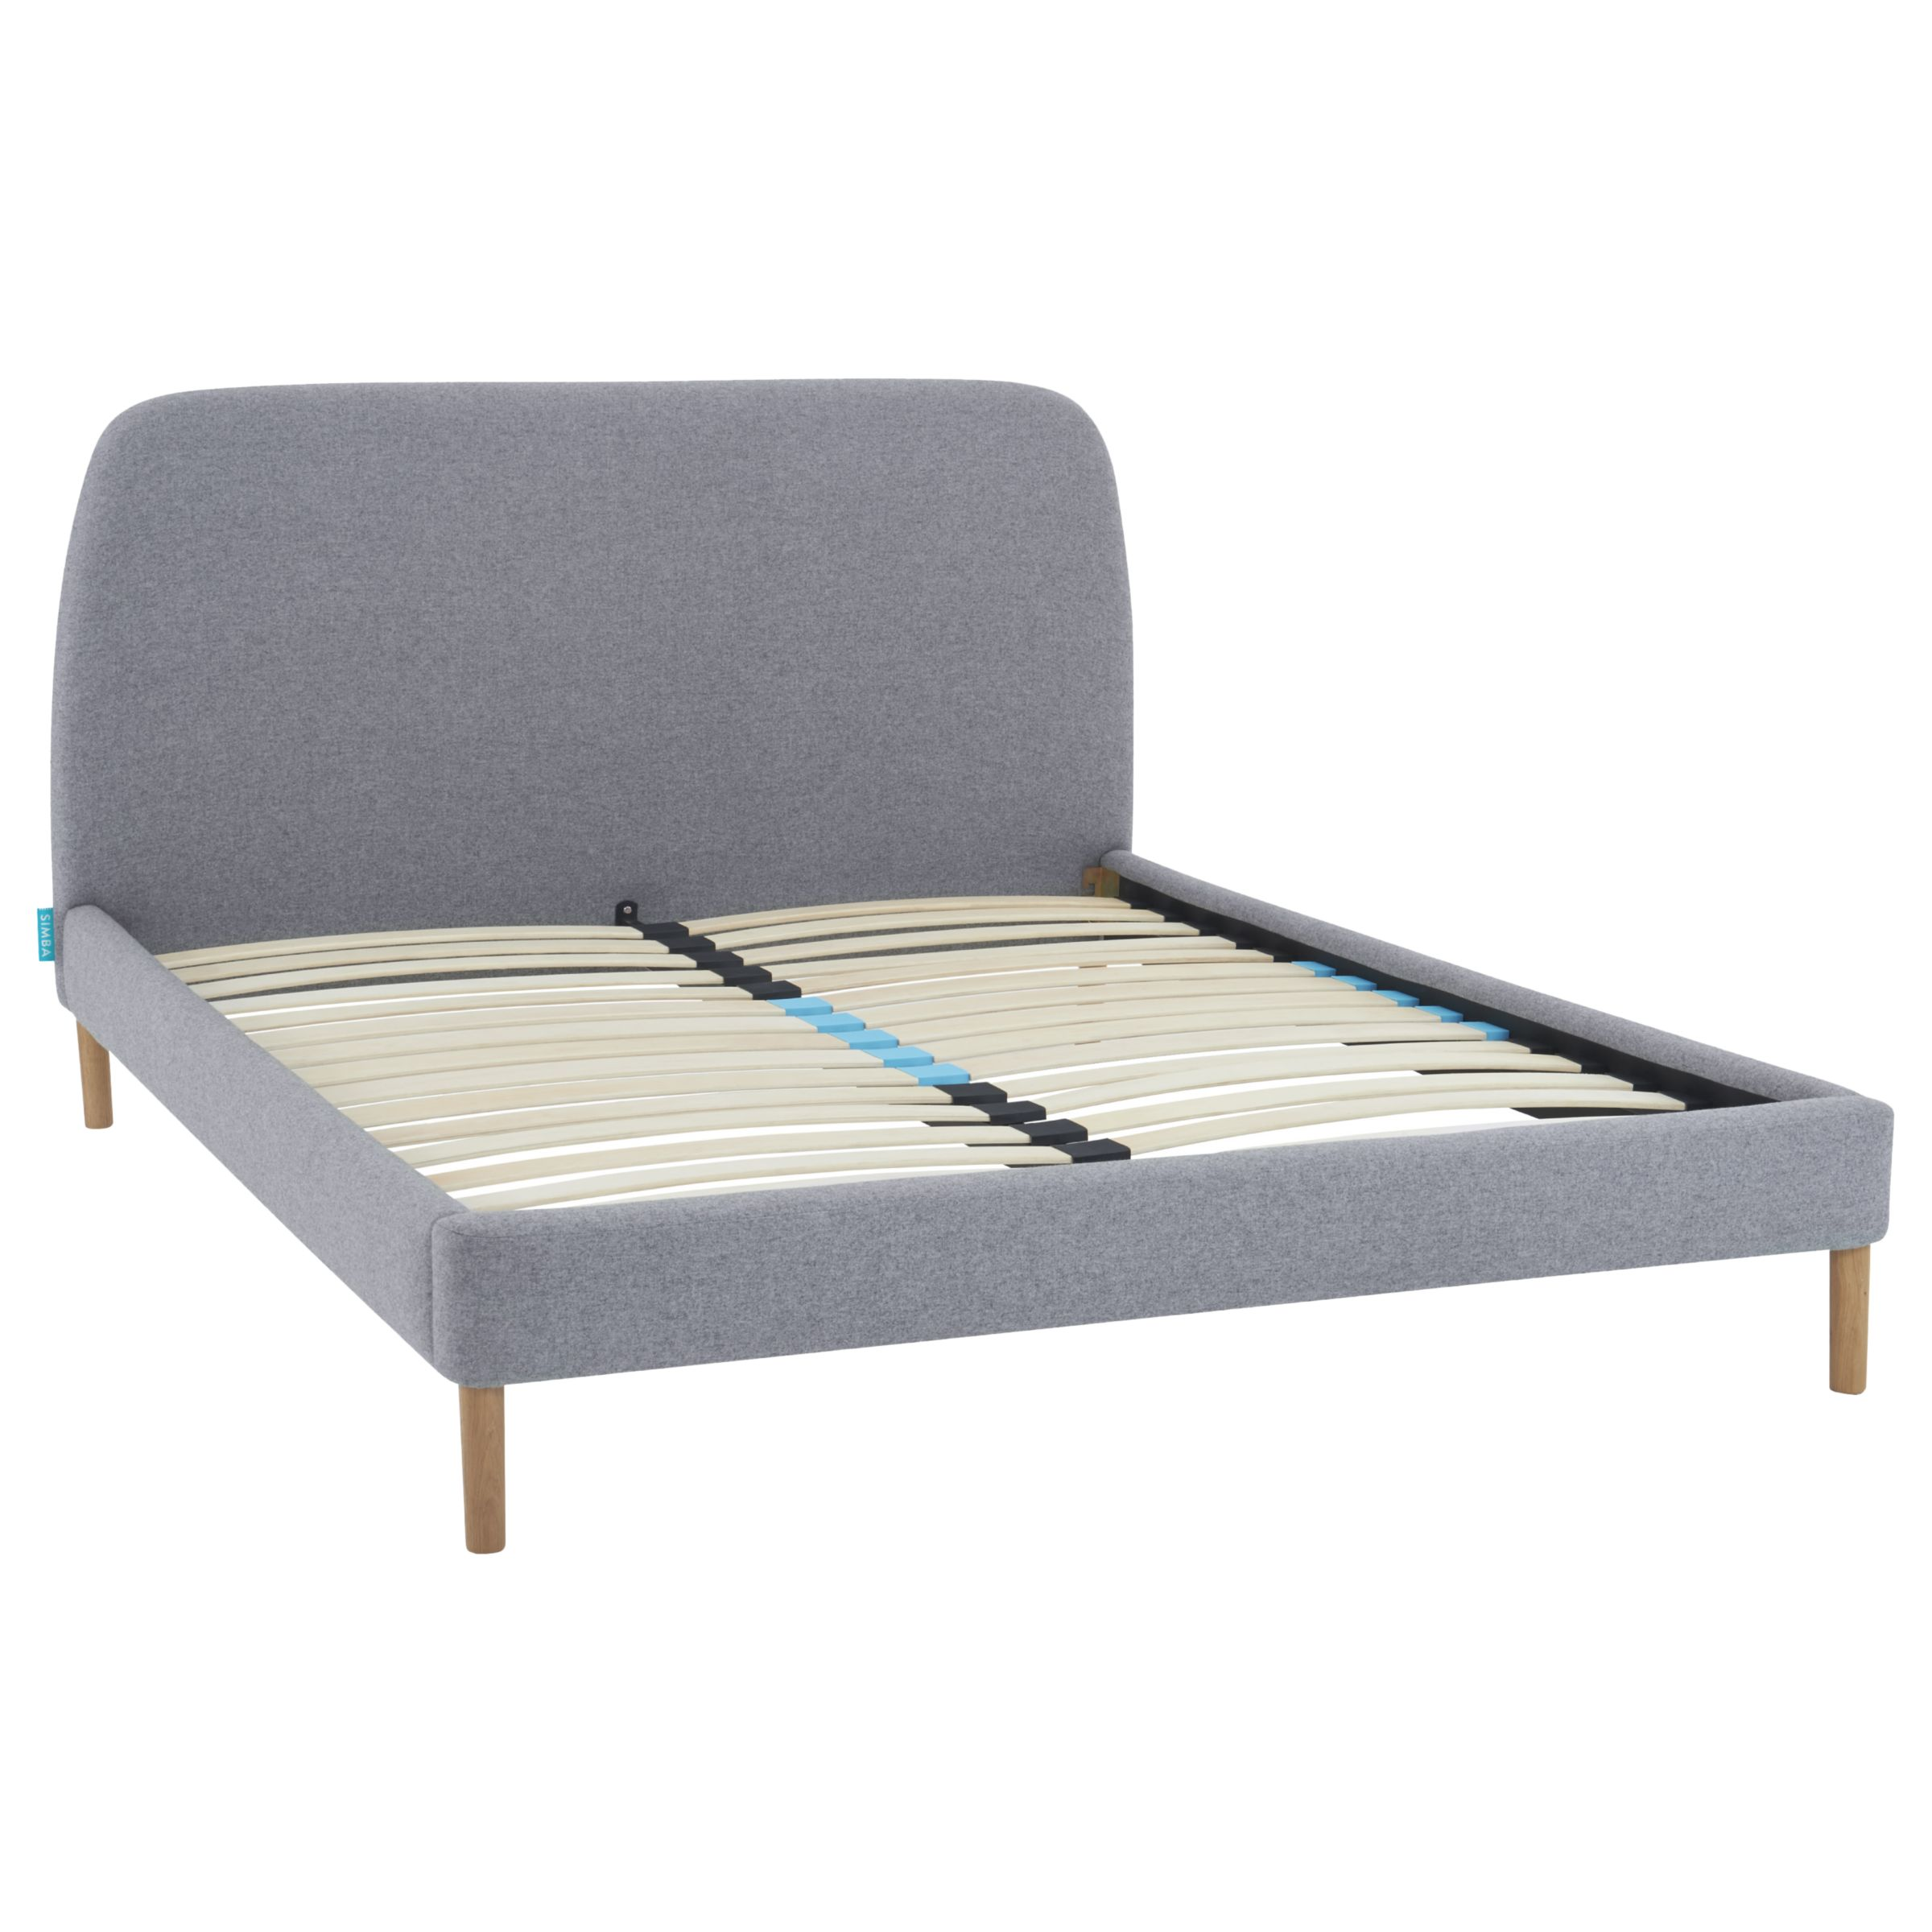 Simba Hybrid Upholstered Bed Frame With Headboard King Size Grey At John Lewis Partners